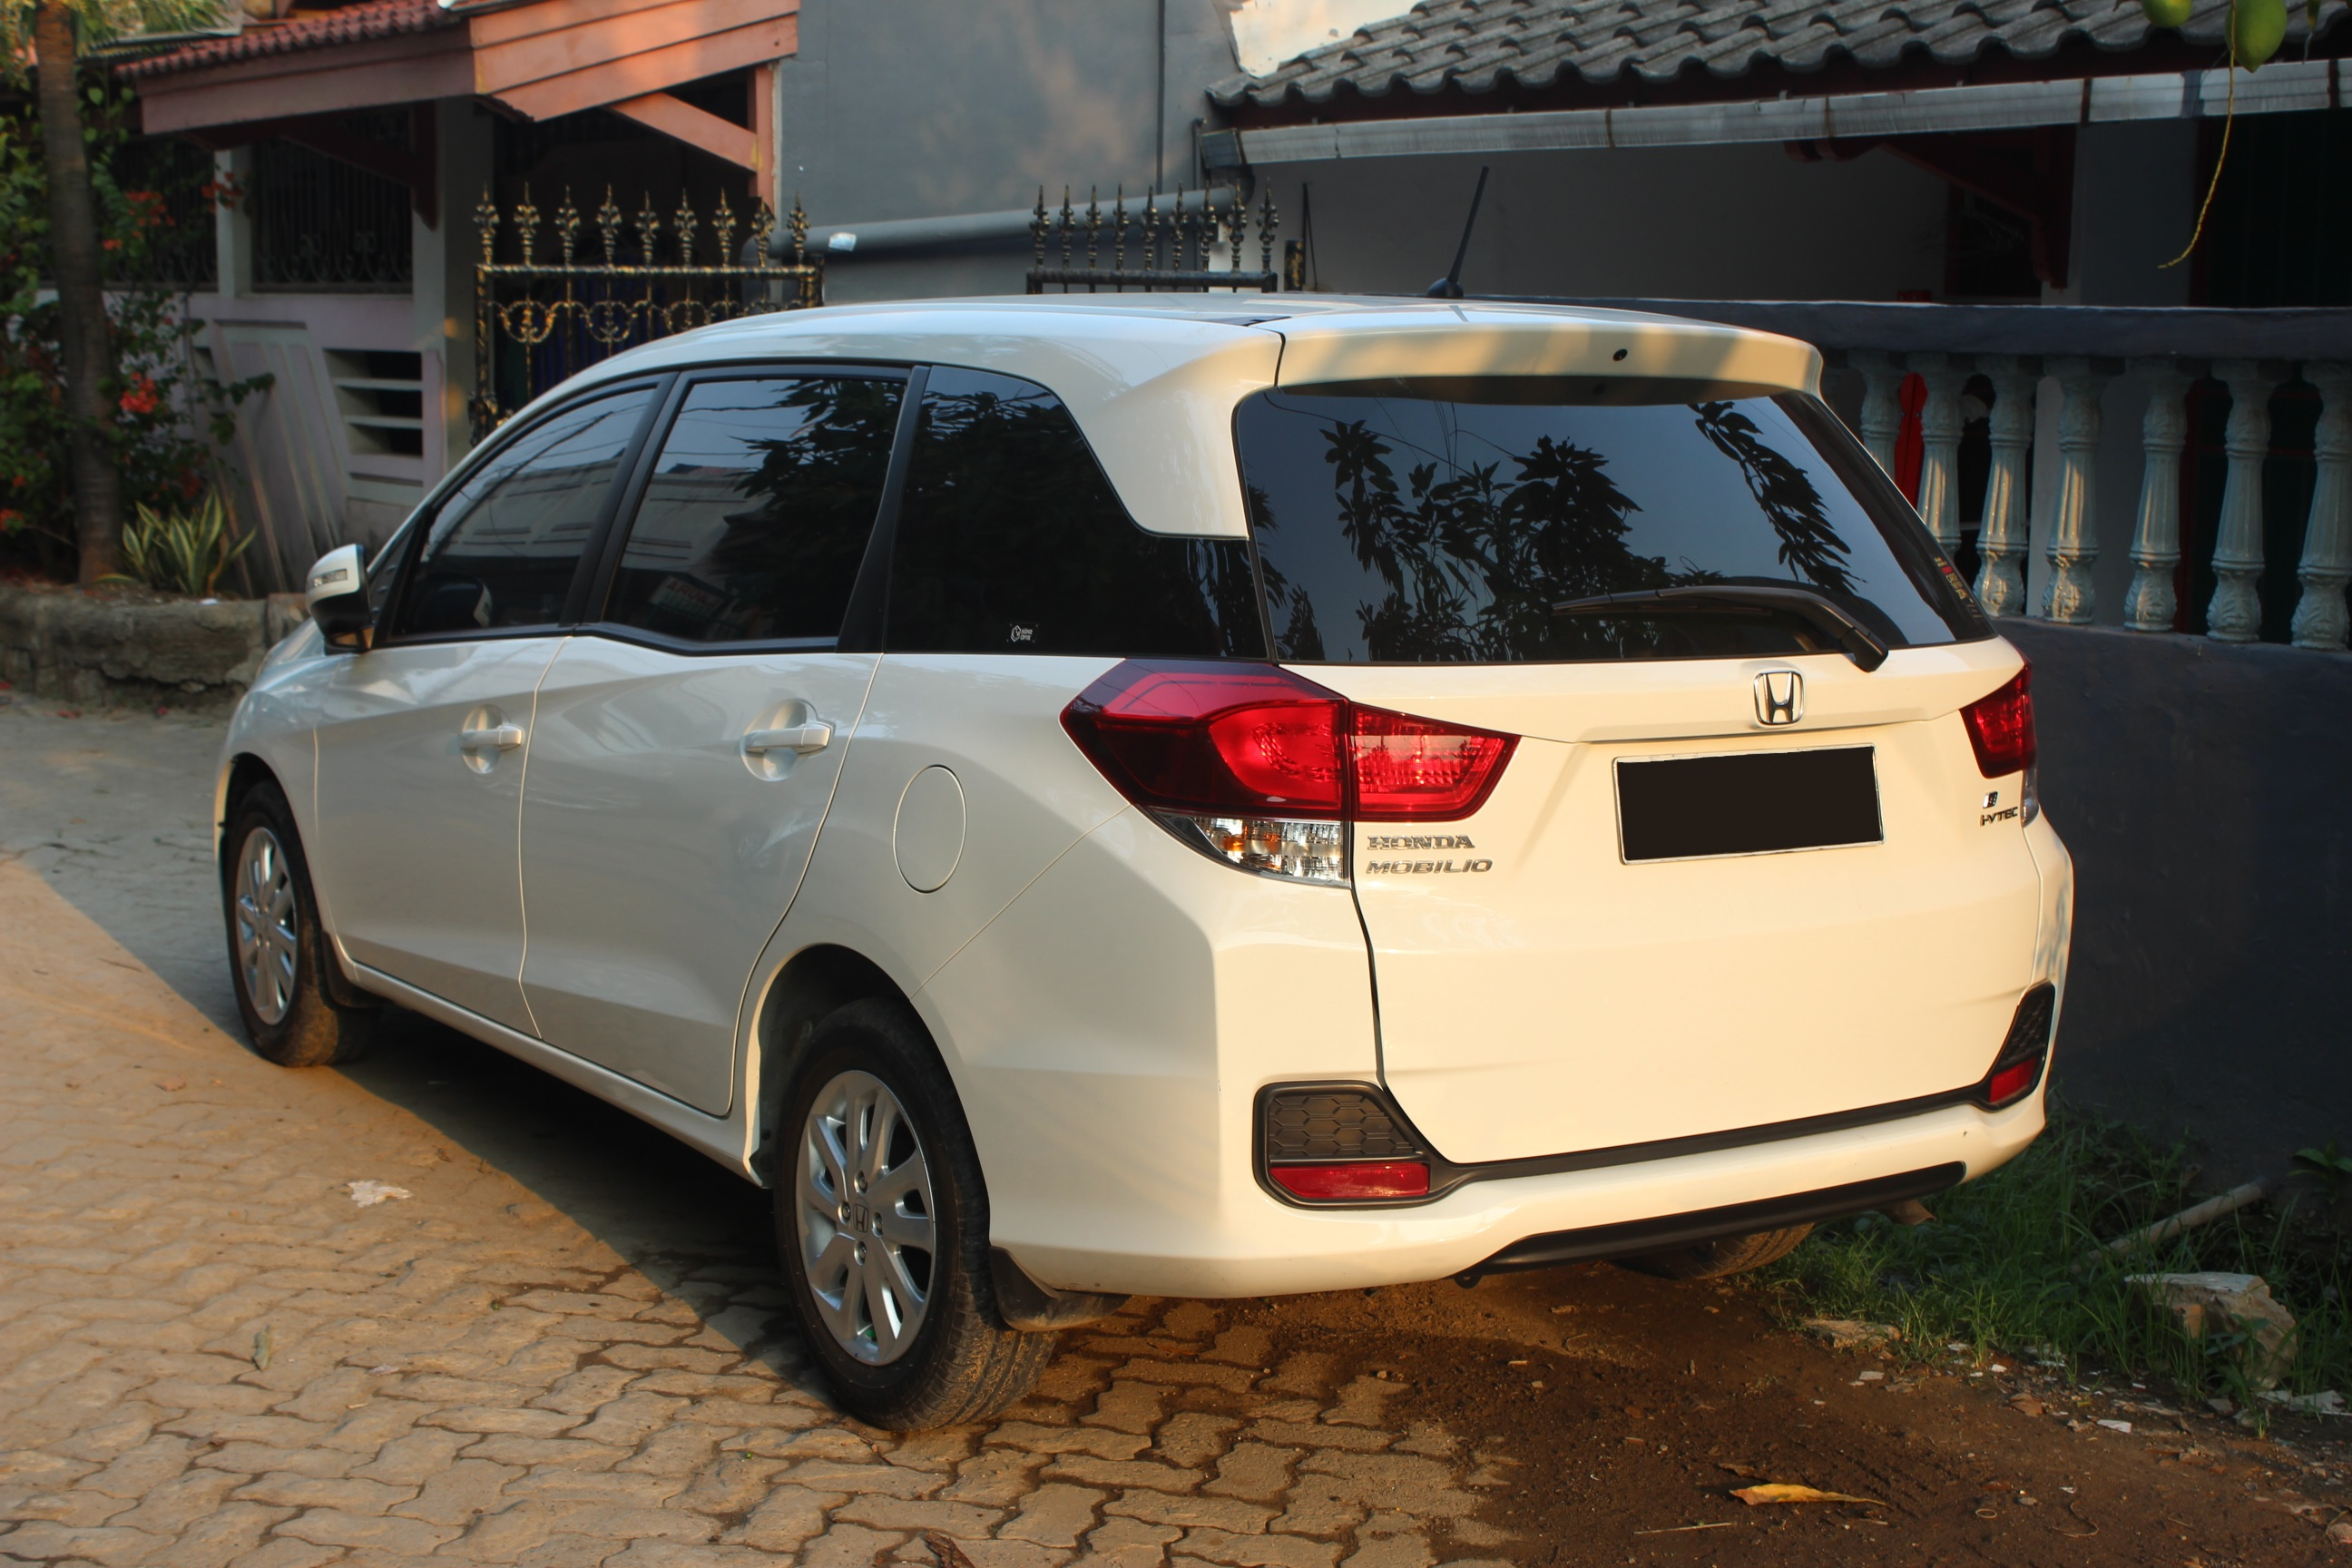 file honda mobilio e rear view june 2 2015 wikimedia mons